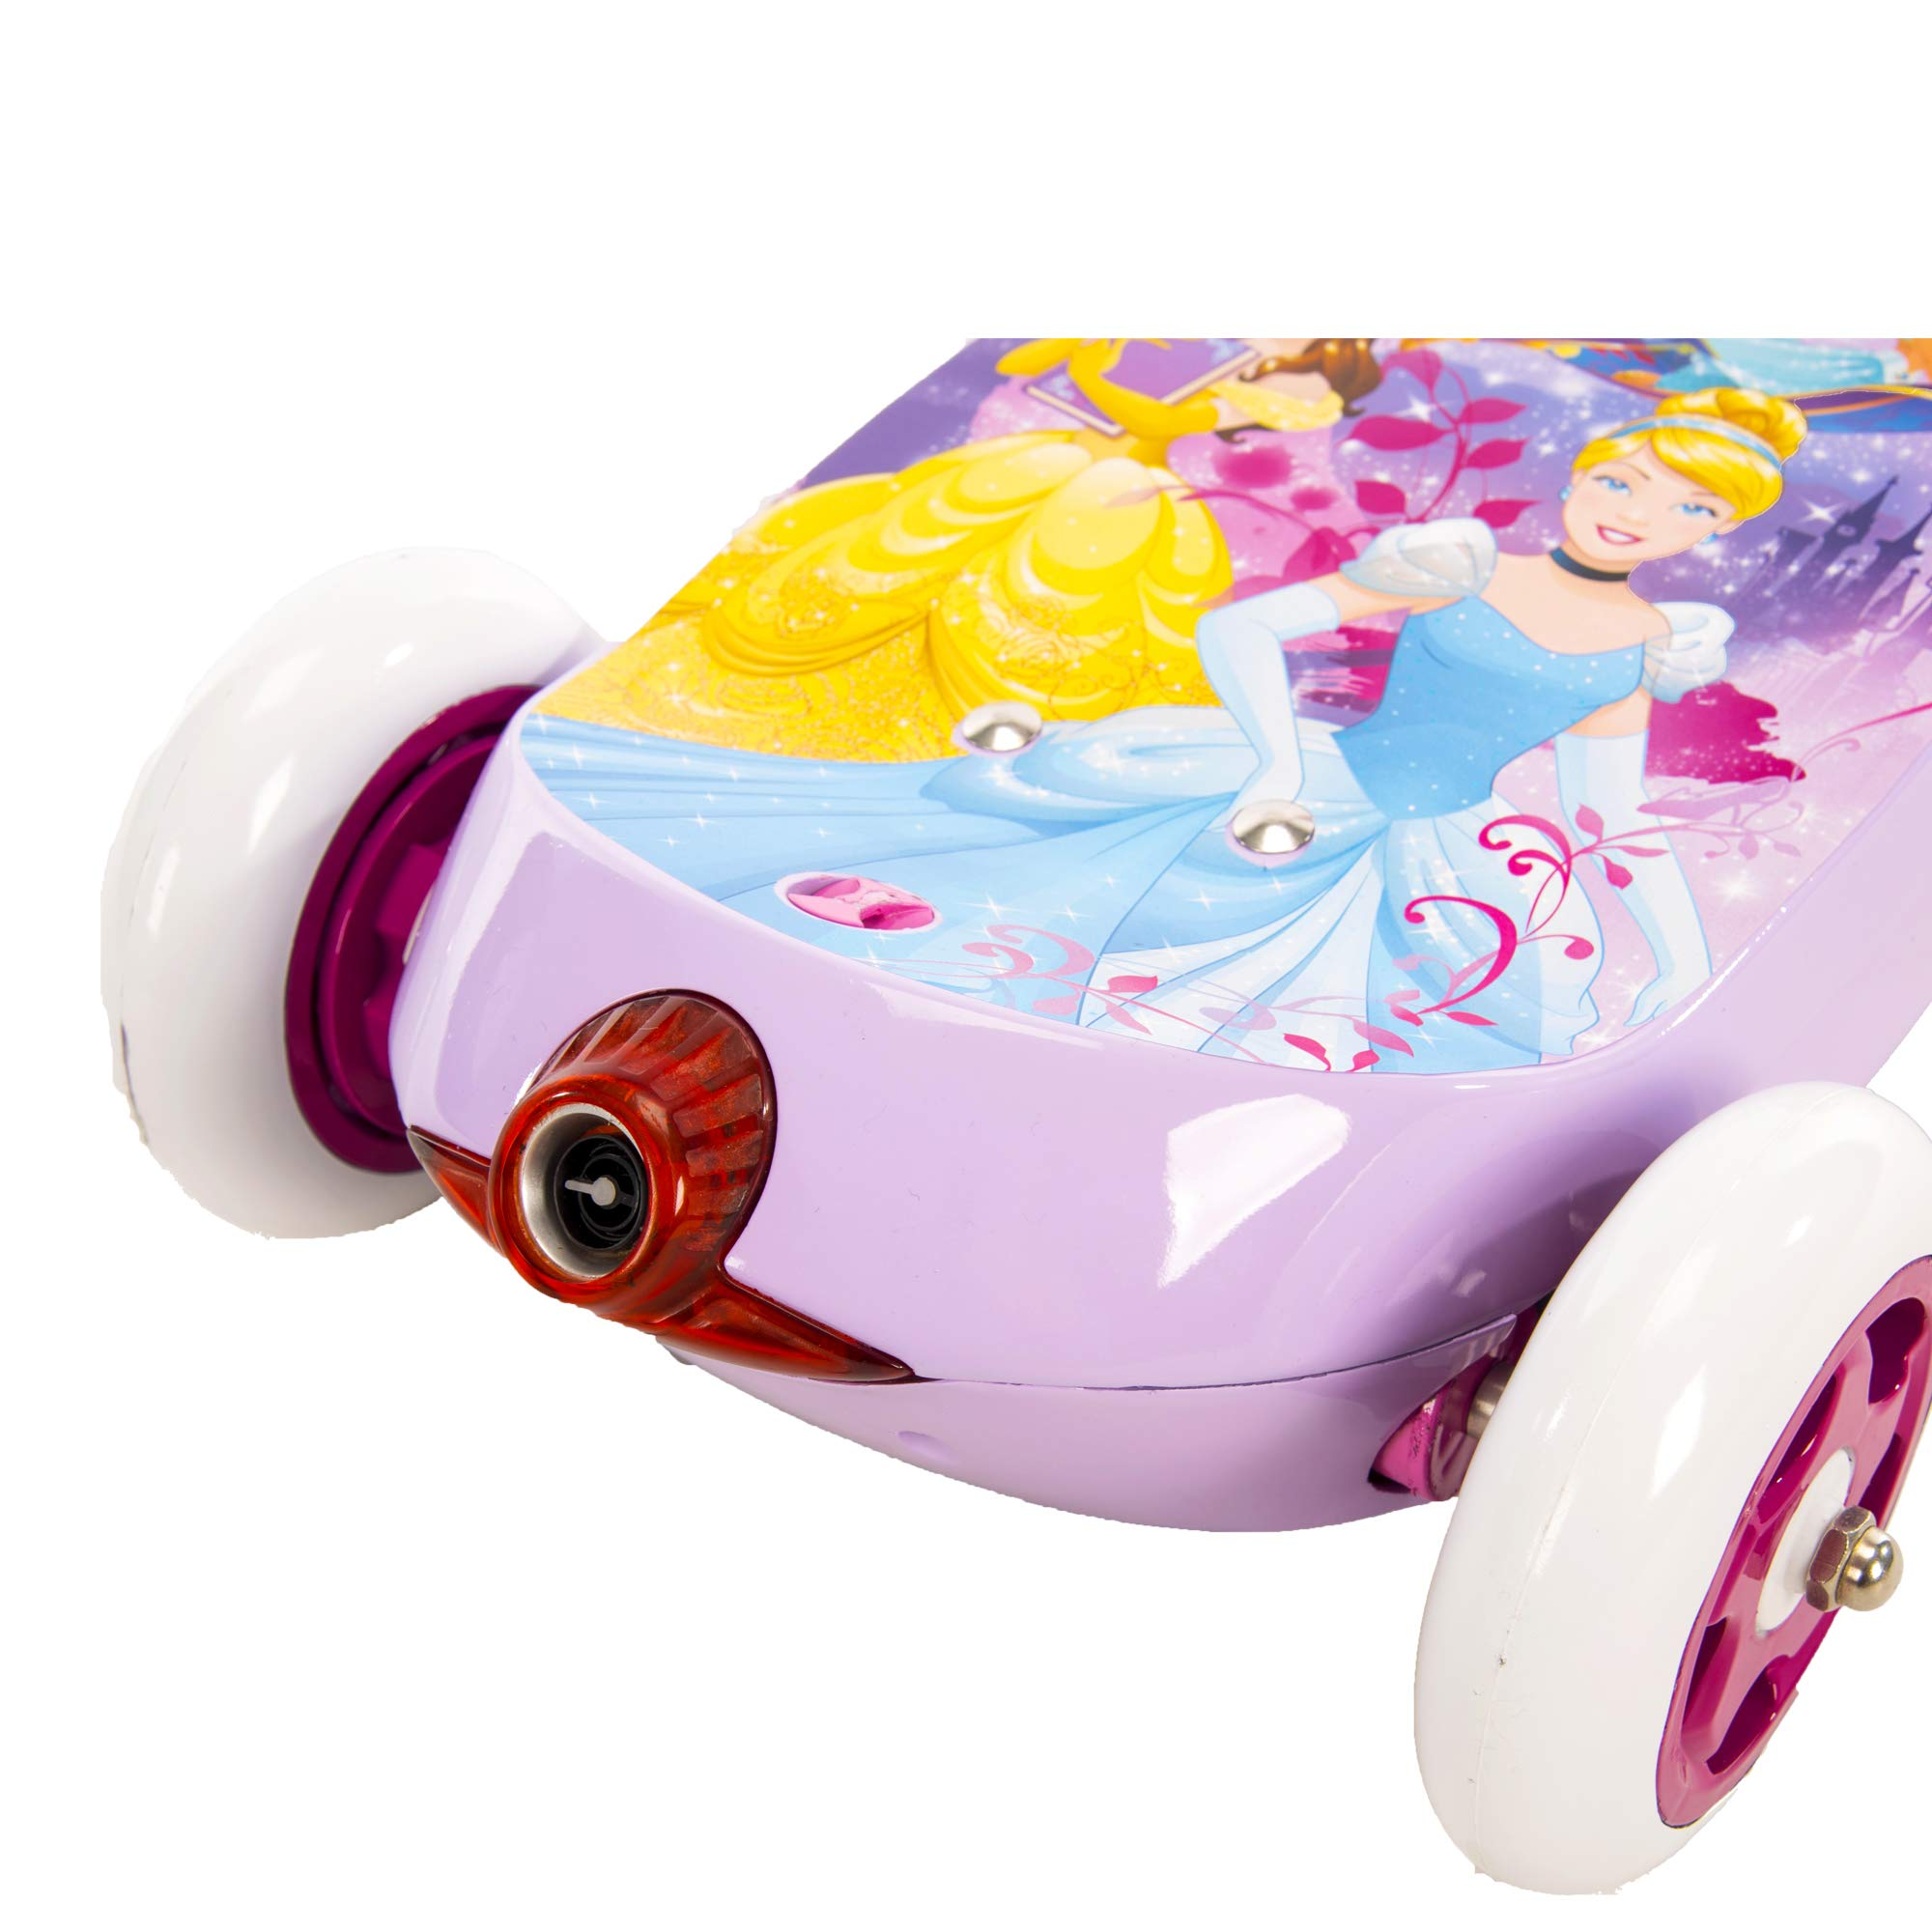 Huffy Disney Princess Girls' 6V Electric 3-Wheel Bubble Scooter by Huffy (Image #2)